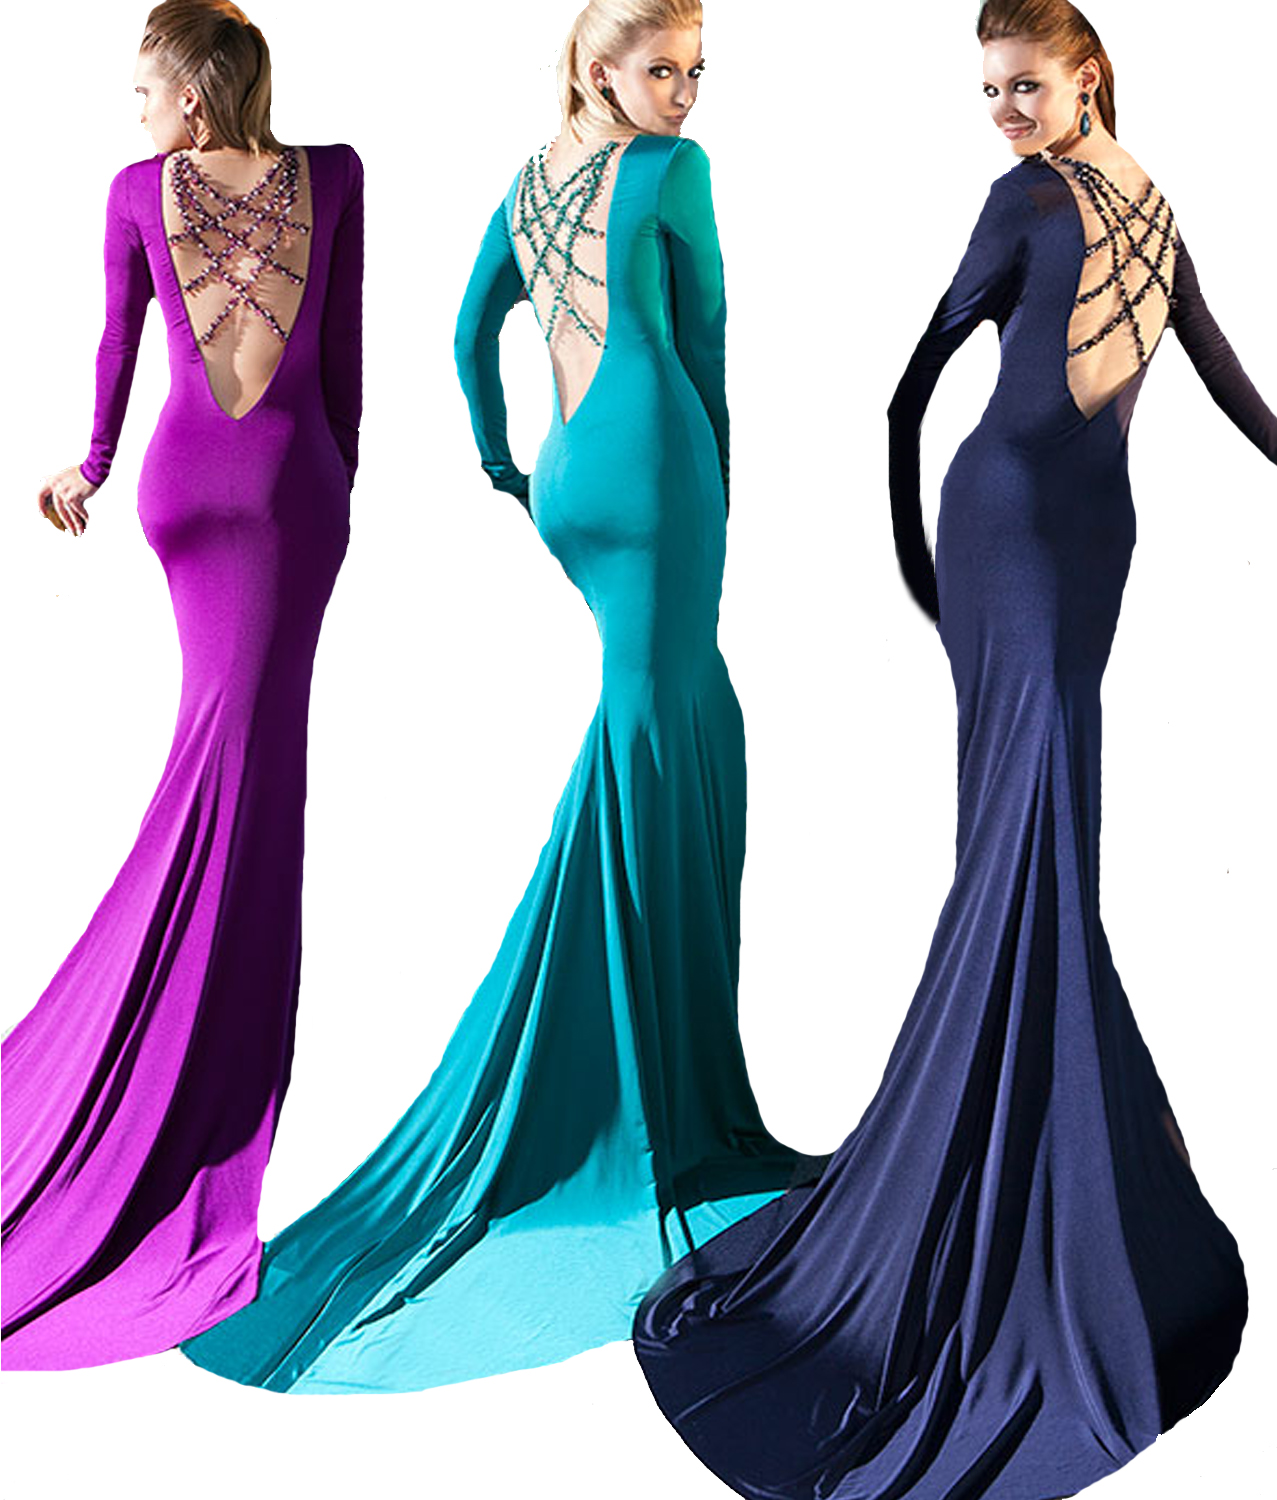 J167 Backless Elegant Long Evening Dress 2016 Mermaid, Long Sleeve ...